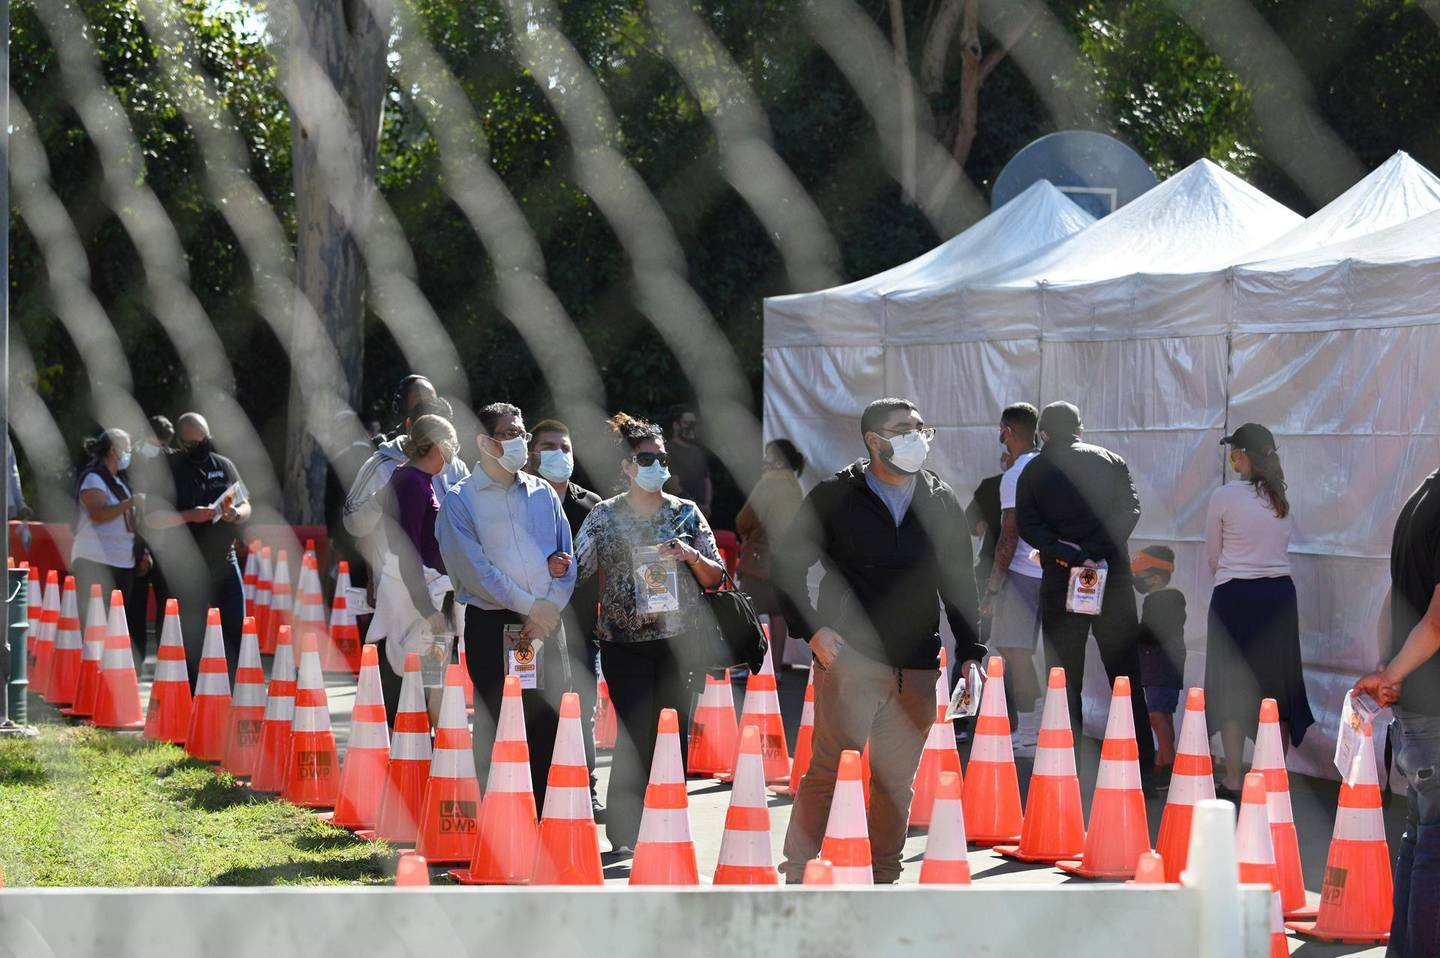 CORRECTION / People wait in long lines for coronavius tests at a walk-up Covid-19 testing site, November 24, 2020, in San Fernando, California, just northeast of the city of Los Angeles. California shattered the state's single-day COVID-19 record with over 20,500 new cases recorded on November 23 ahead of the Thanksgiving holiday. / AFP / Robyn Beck